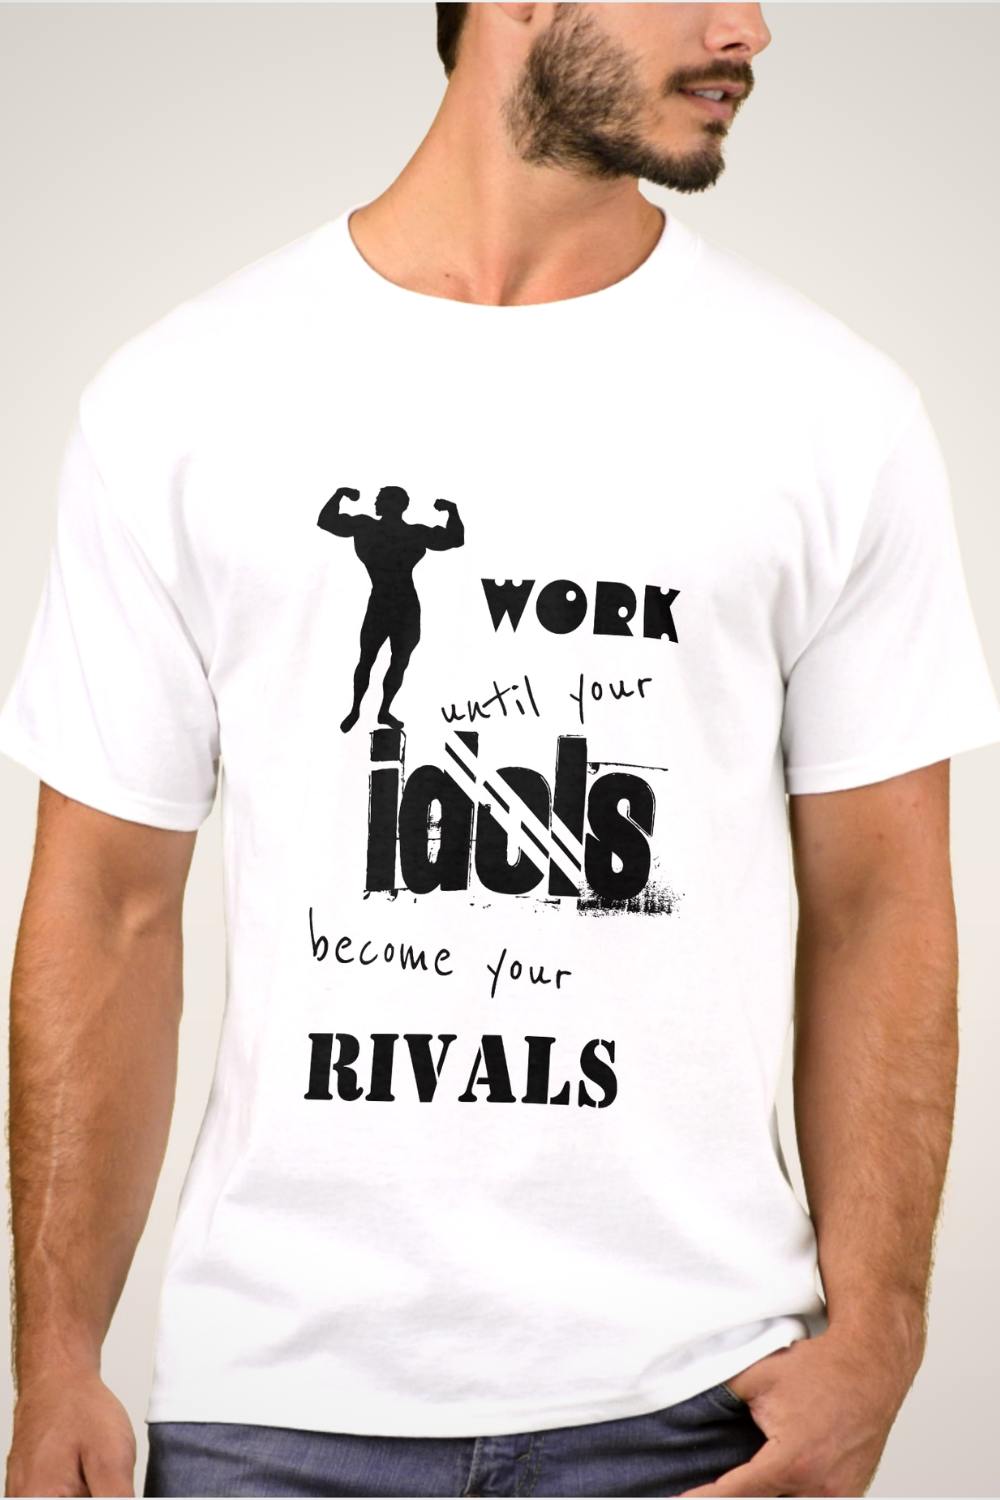 b5a31cb6 Work until your idols become your rivals T-Shirt. Cool T shirt design ideas  for men. You can customize this background. #mensfashion #tshirtdesign